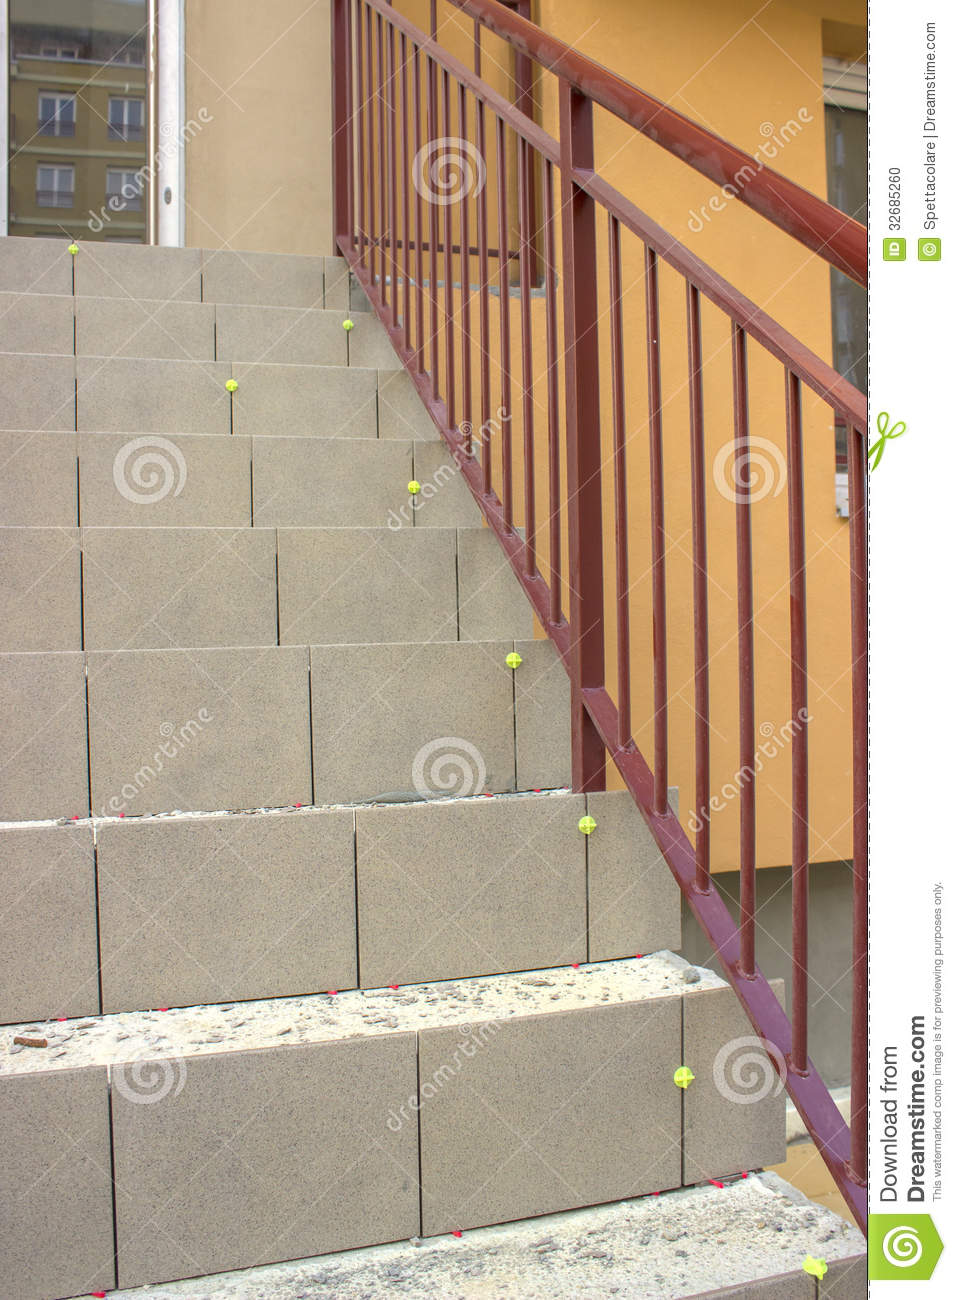 Steps To Tile A Floor Images 20 DIY Wallpapered Stair